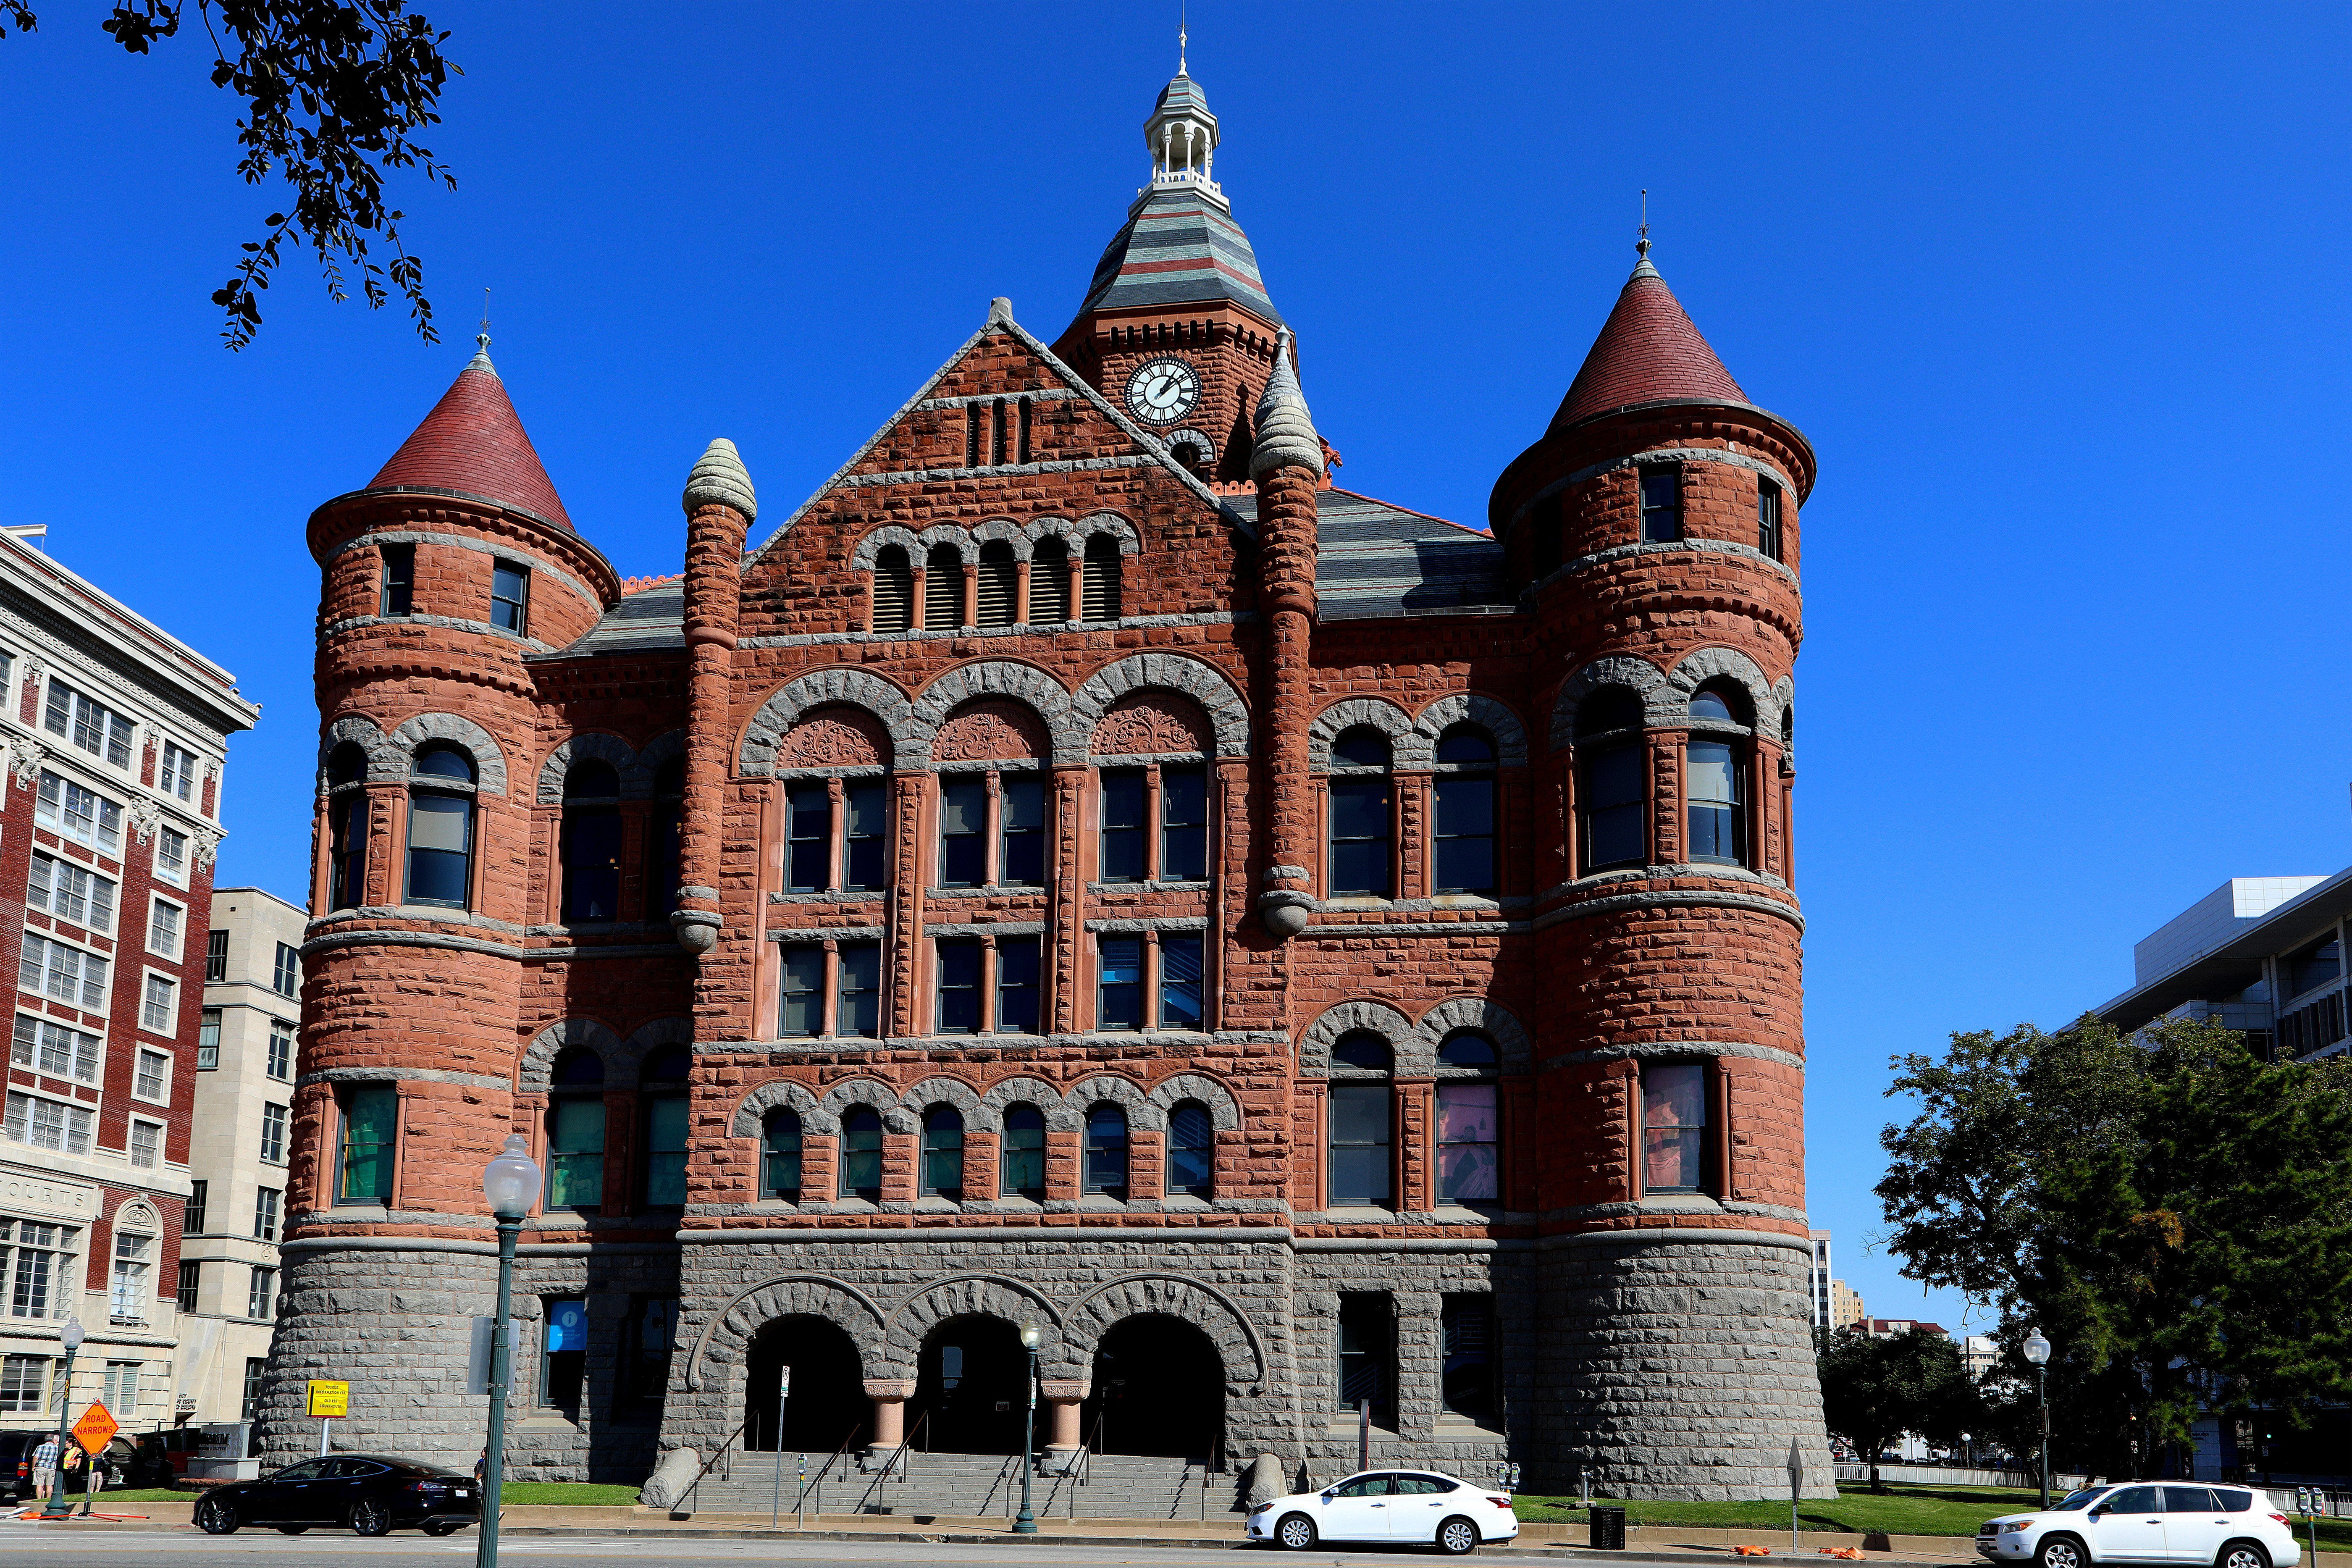 multi-story red stone public building with arched windows and doorways and symmetrical towers